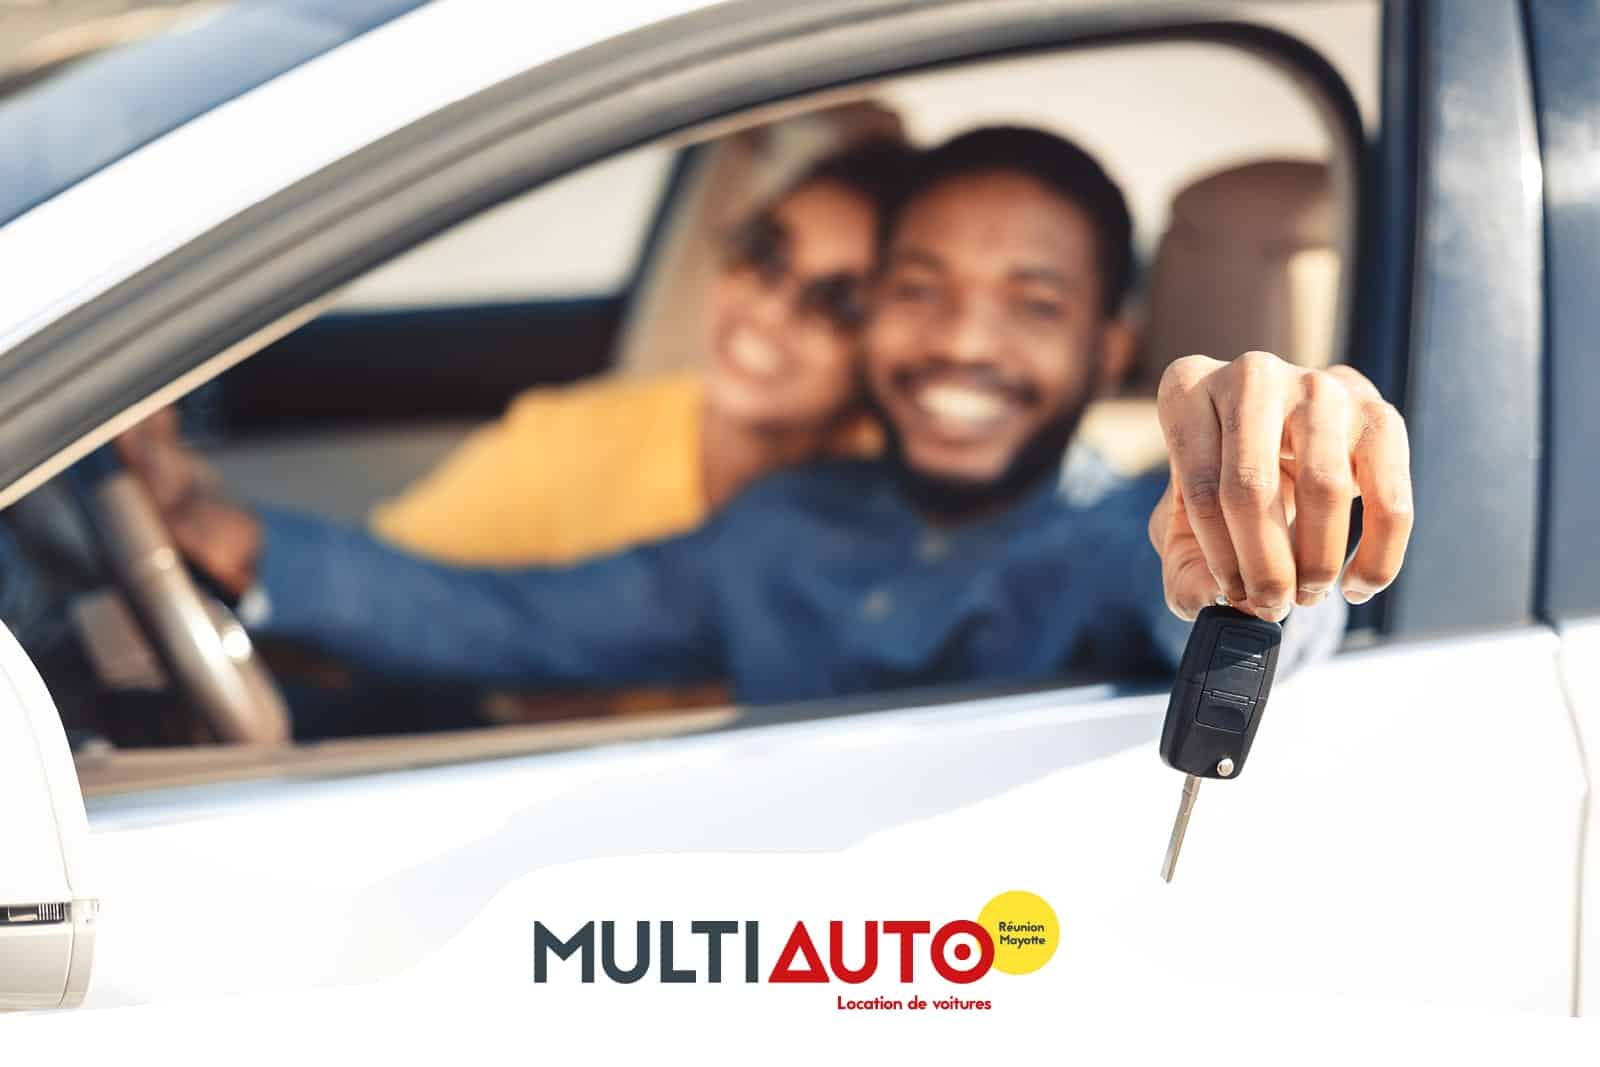 Car security at the airport with Multiauto Réunion